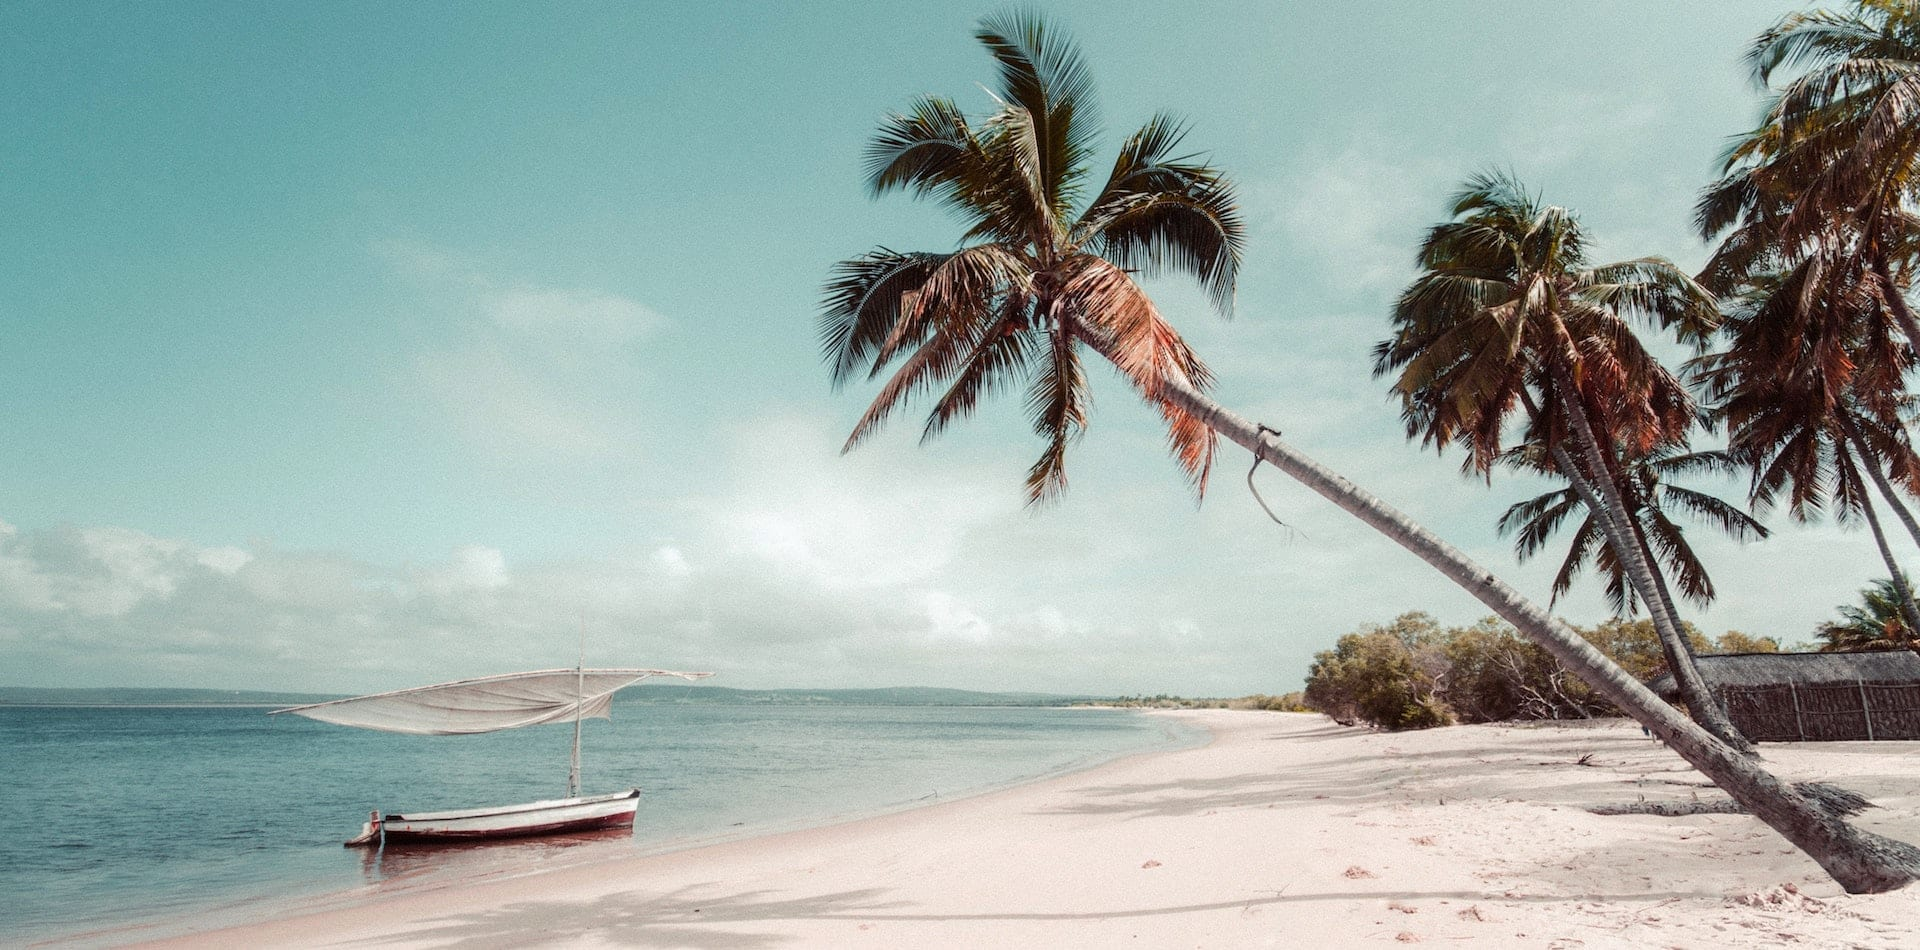 Palm Tree and Authentic Boat on a Beach in Mozambique, Indian Ocean, Africa